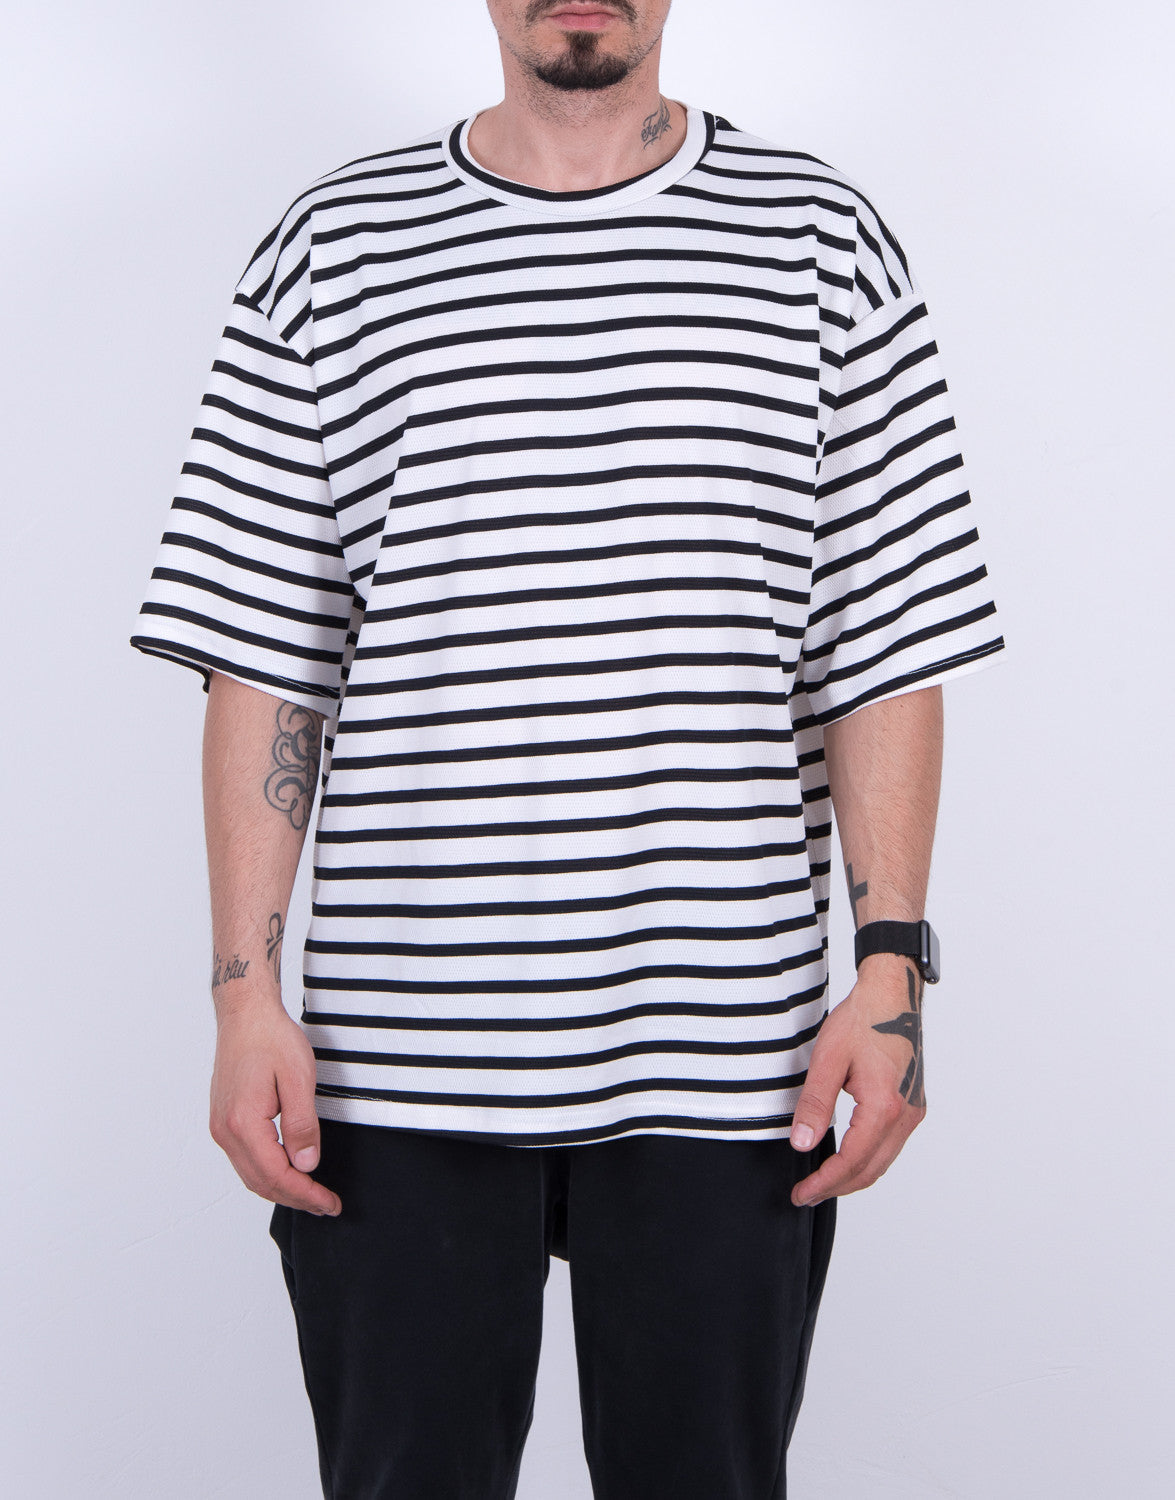 Boxy Loose Fit Short Sleeve T-Shirt